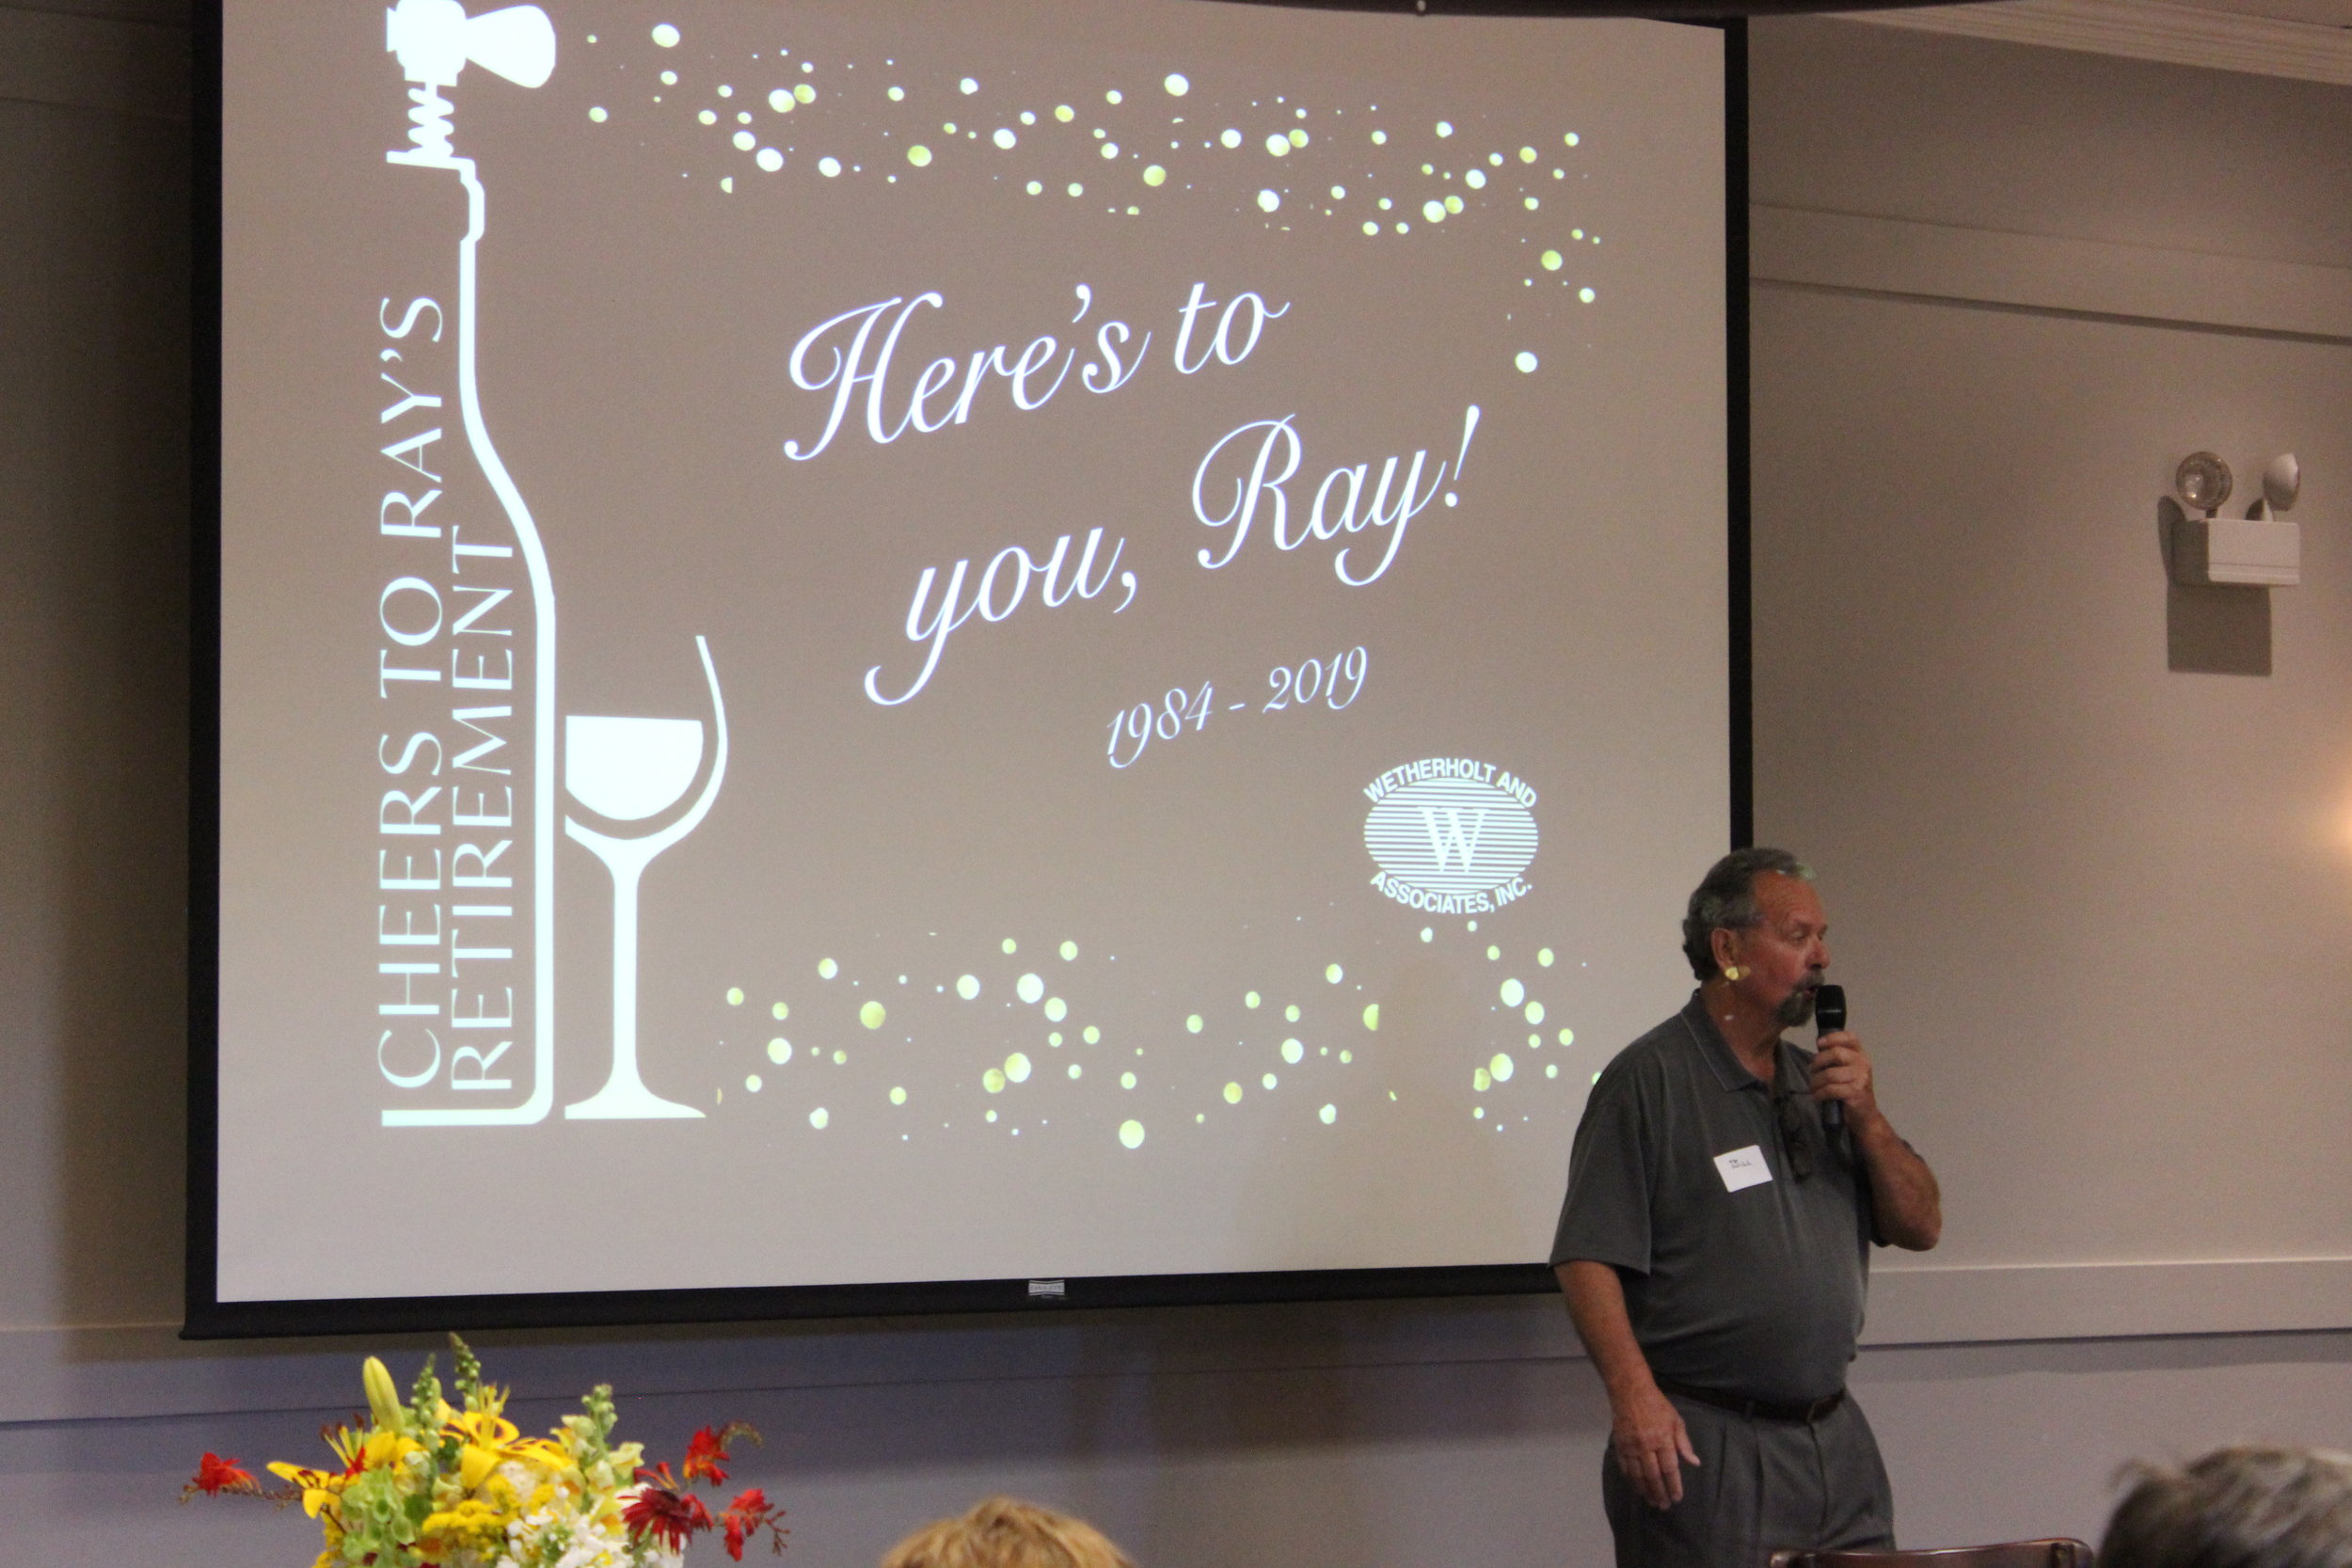 Retired Wetherholt Principal, Bill Cypher, shares about working with Ray